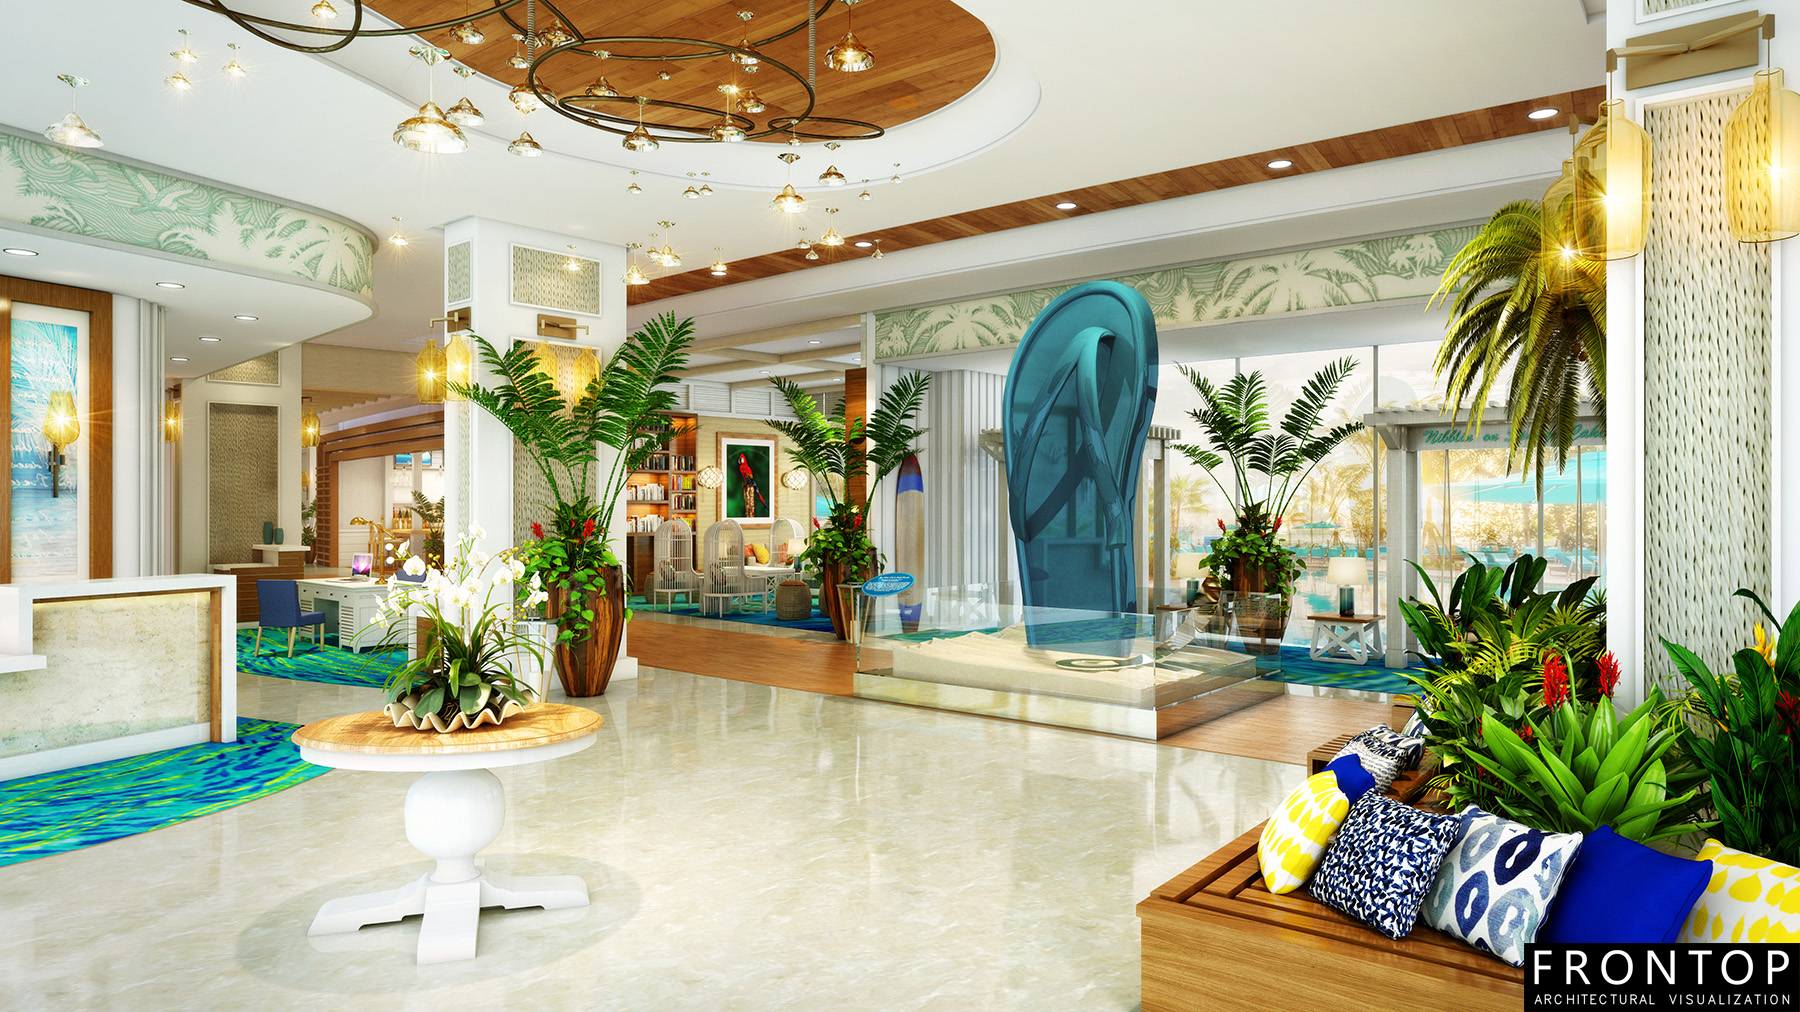 Nassau Lobby Featured Image